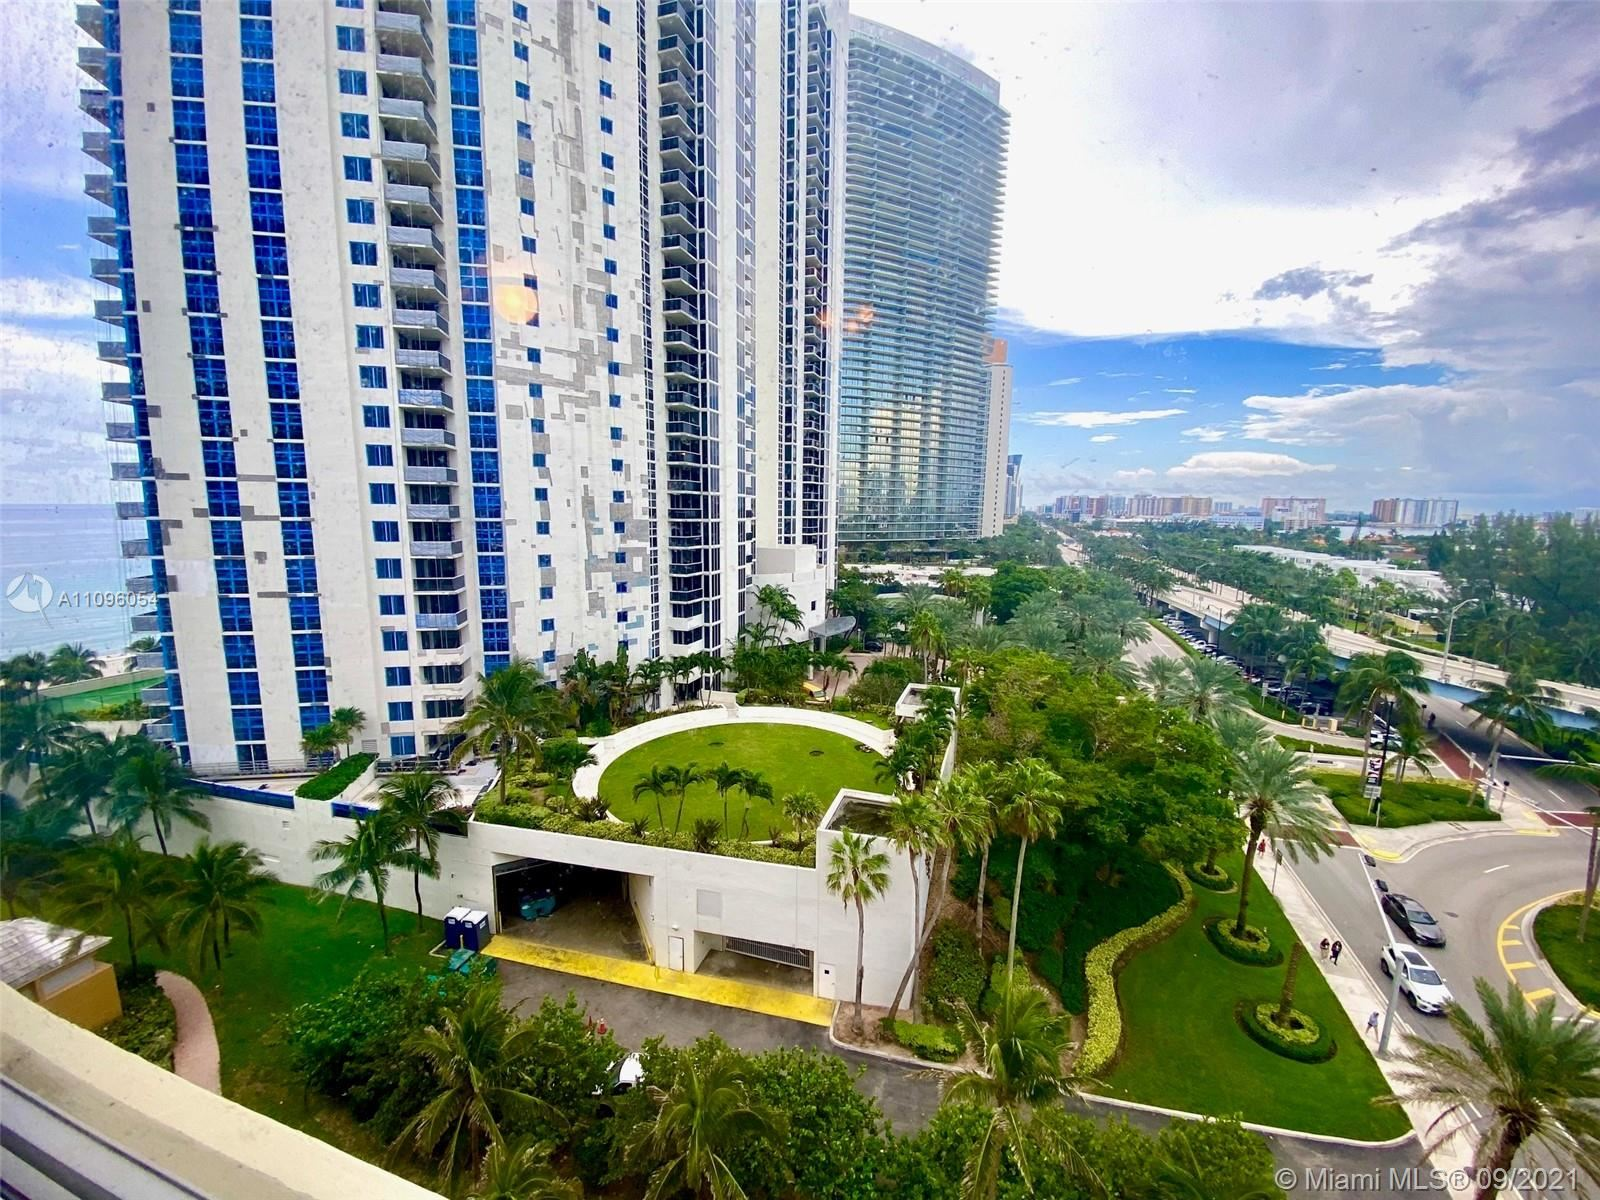 19201 Collins Ave #840, Sunny Isles, FL 33160 - #: A11096054